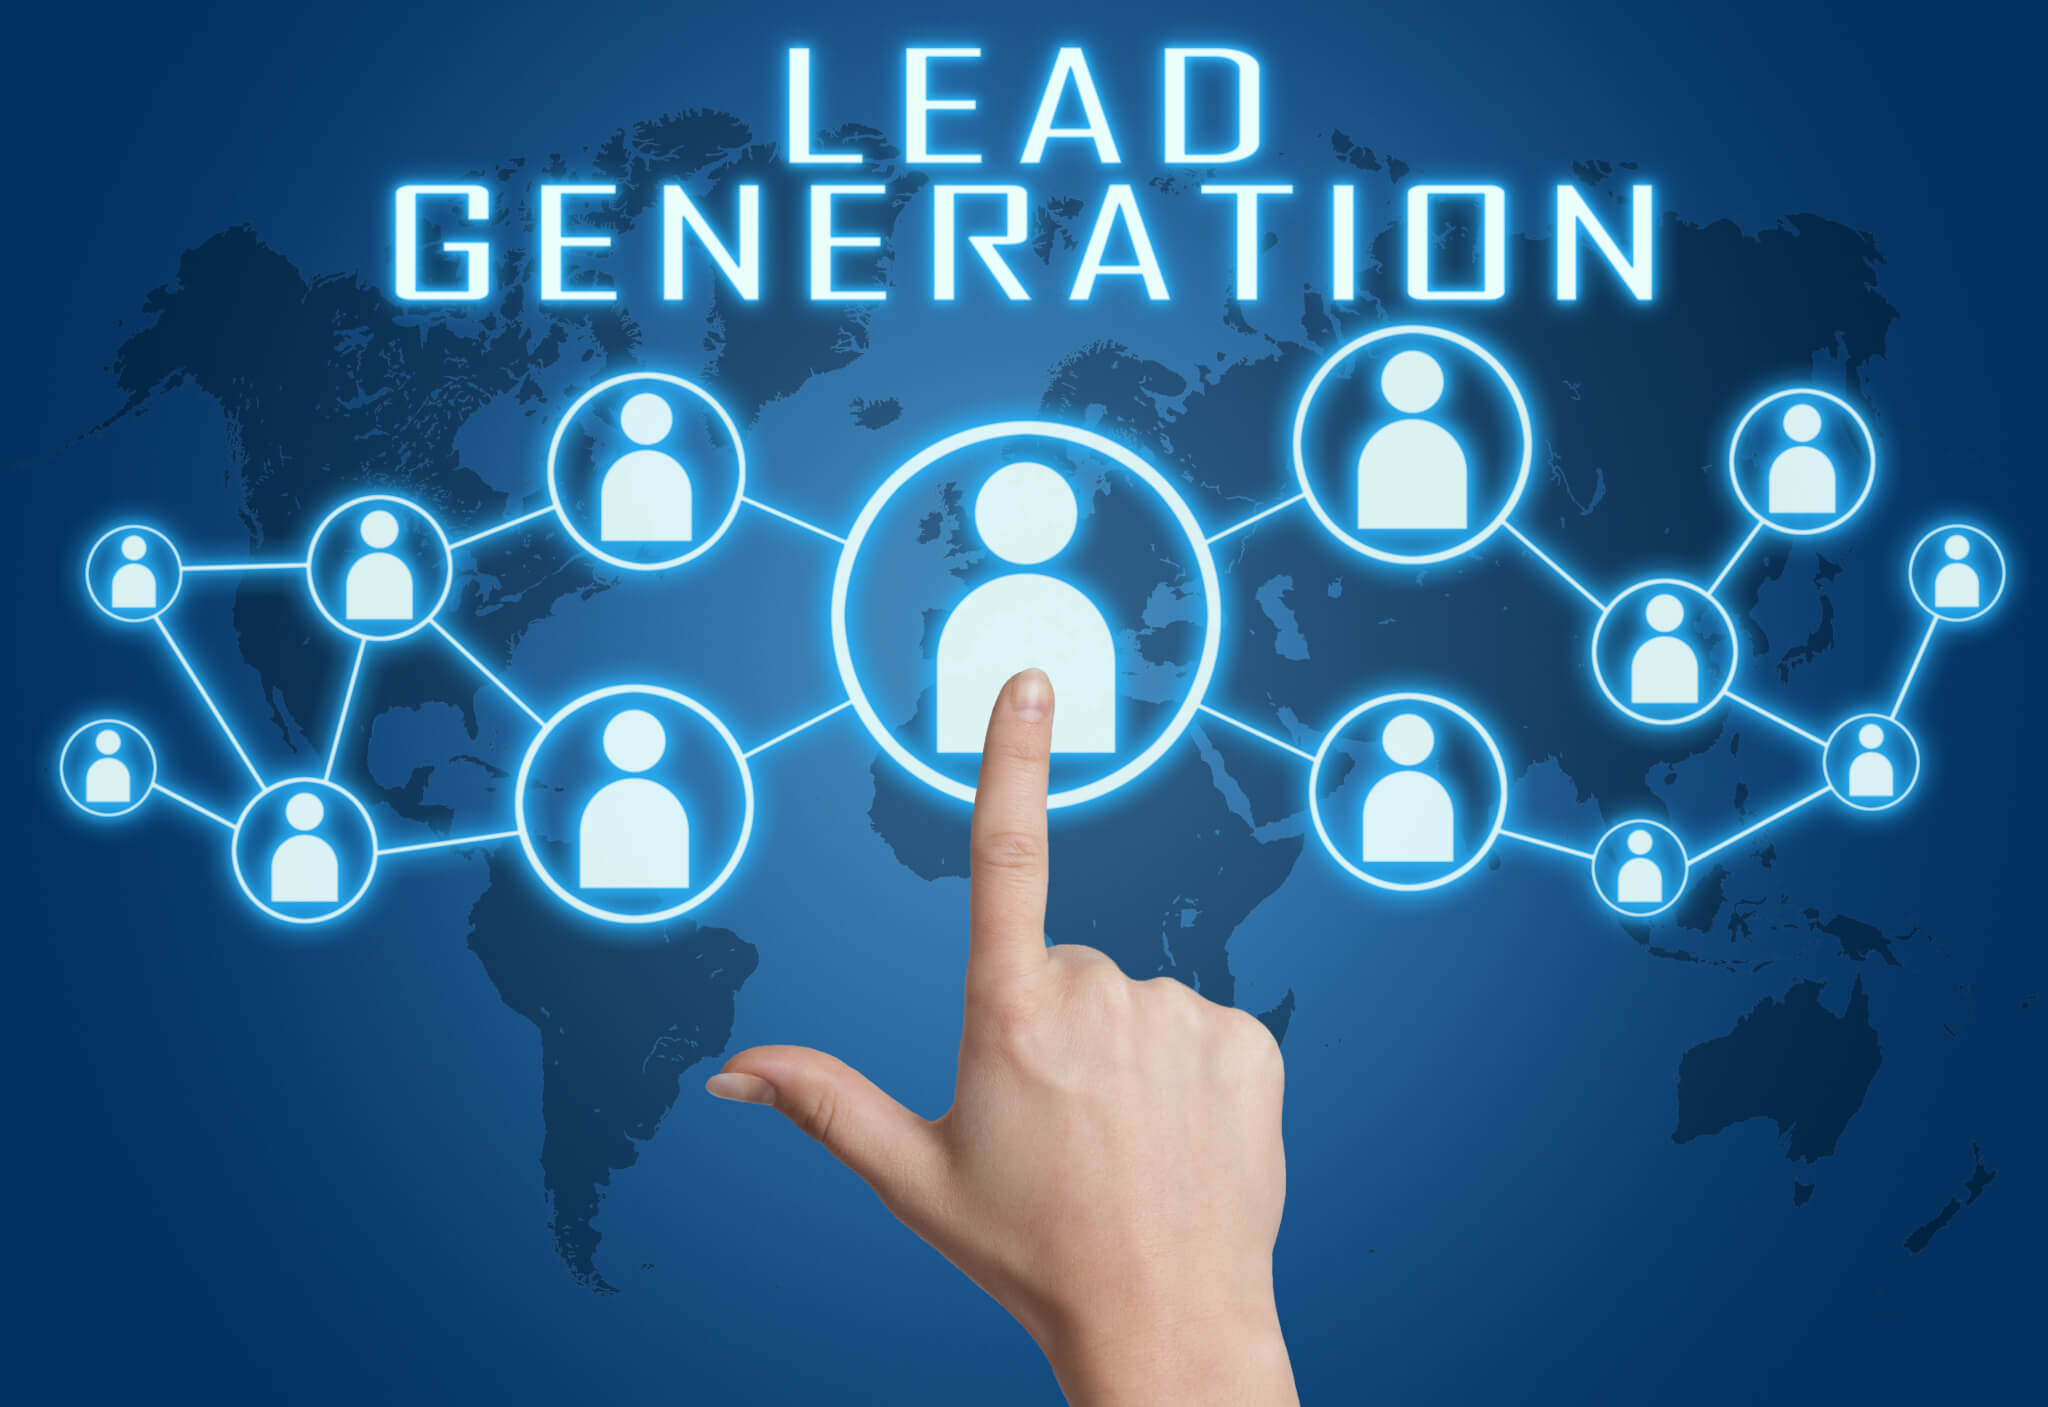 Facebook Ads for Lead Generation: Case Study Background Image